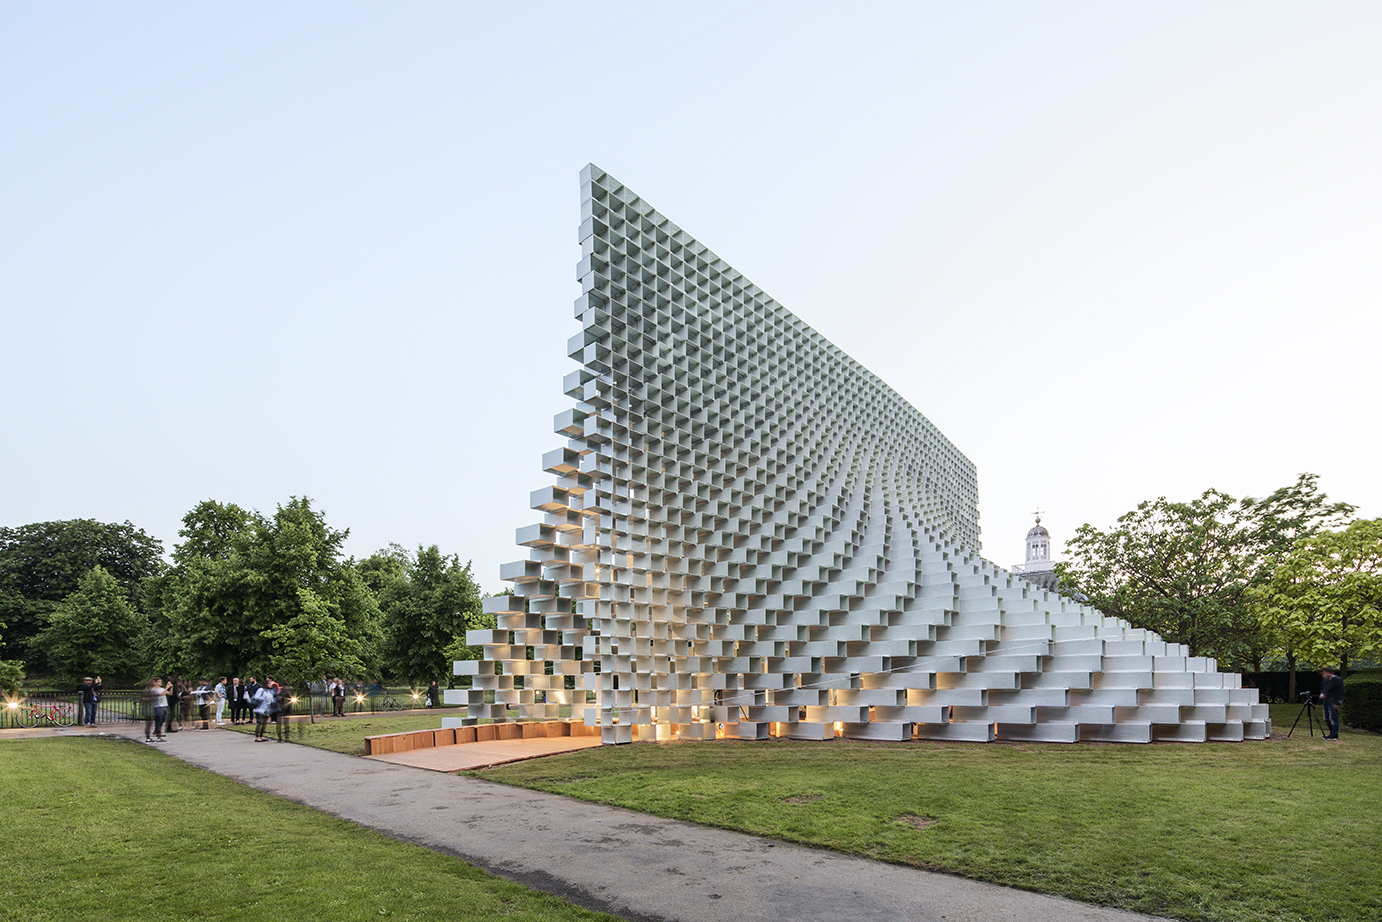 photo-boegly-grazia-2016-serpentine pavilion-london- LowDef-55